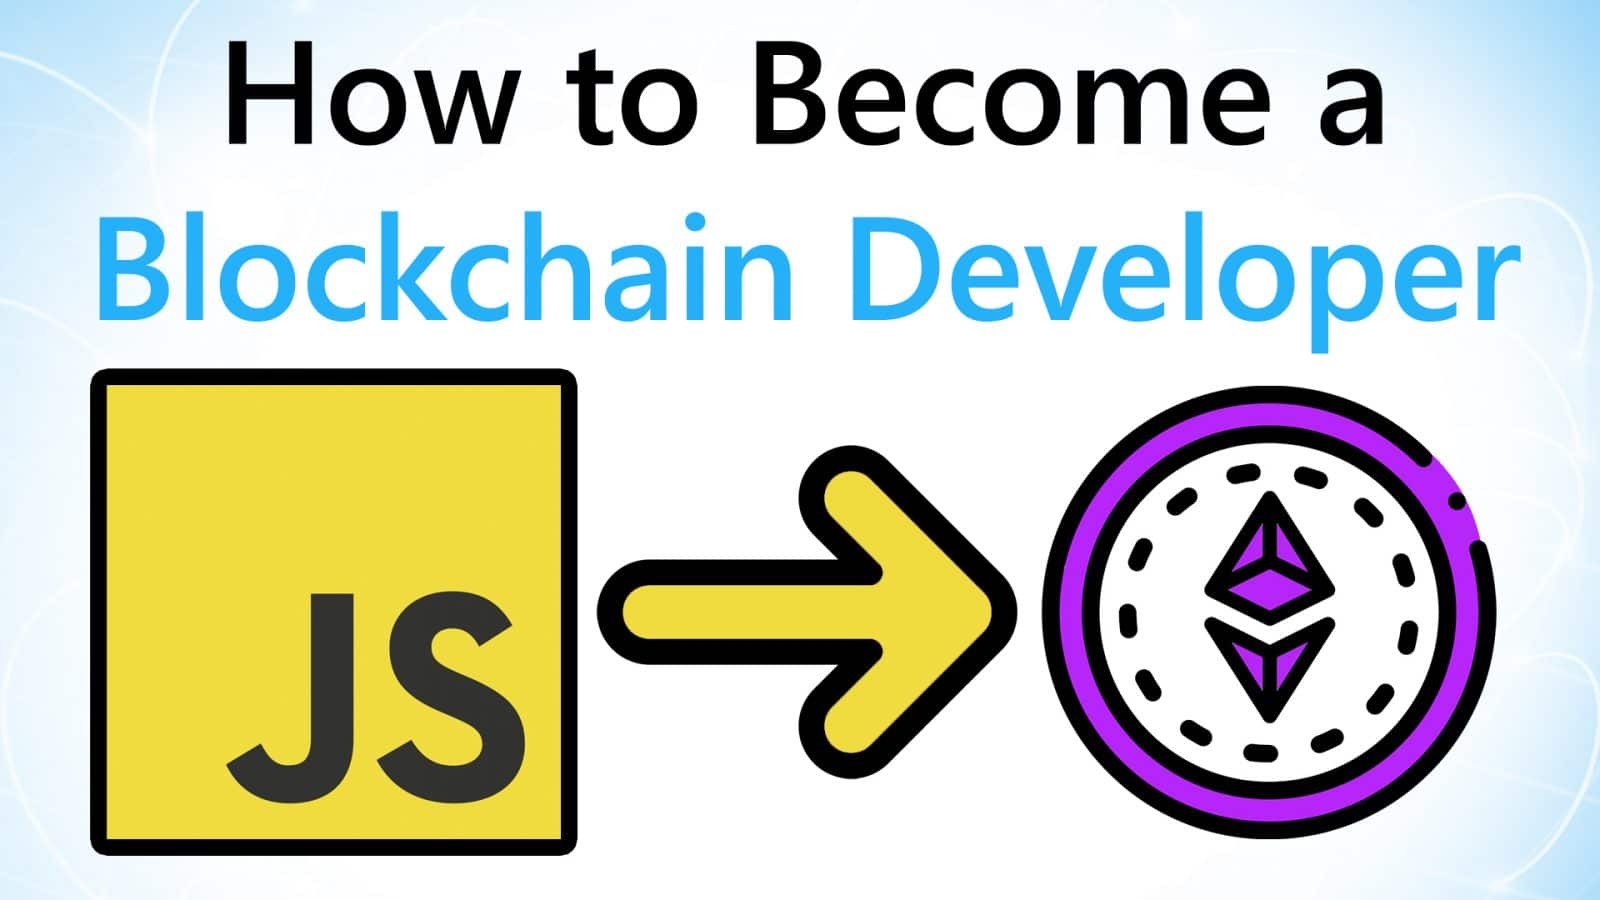 Video Guide: How to Become a Blockchain Developer